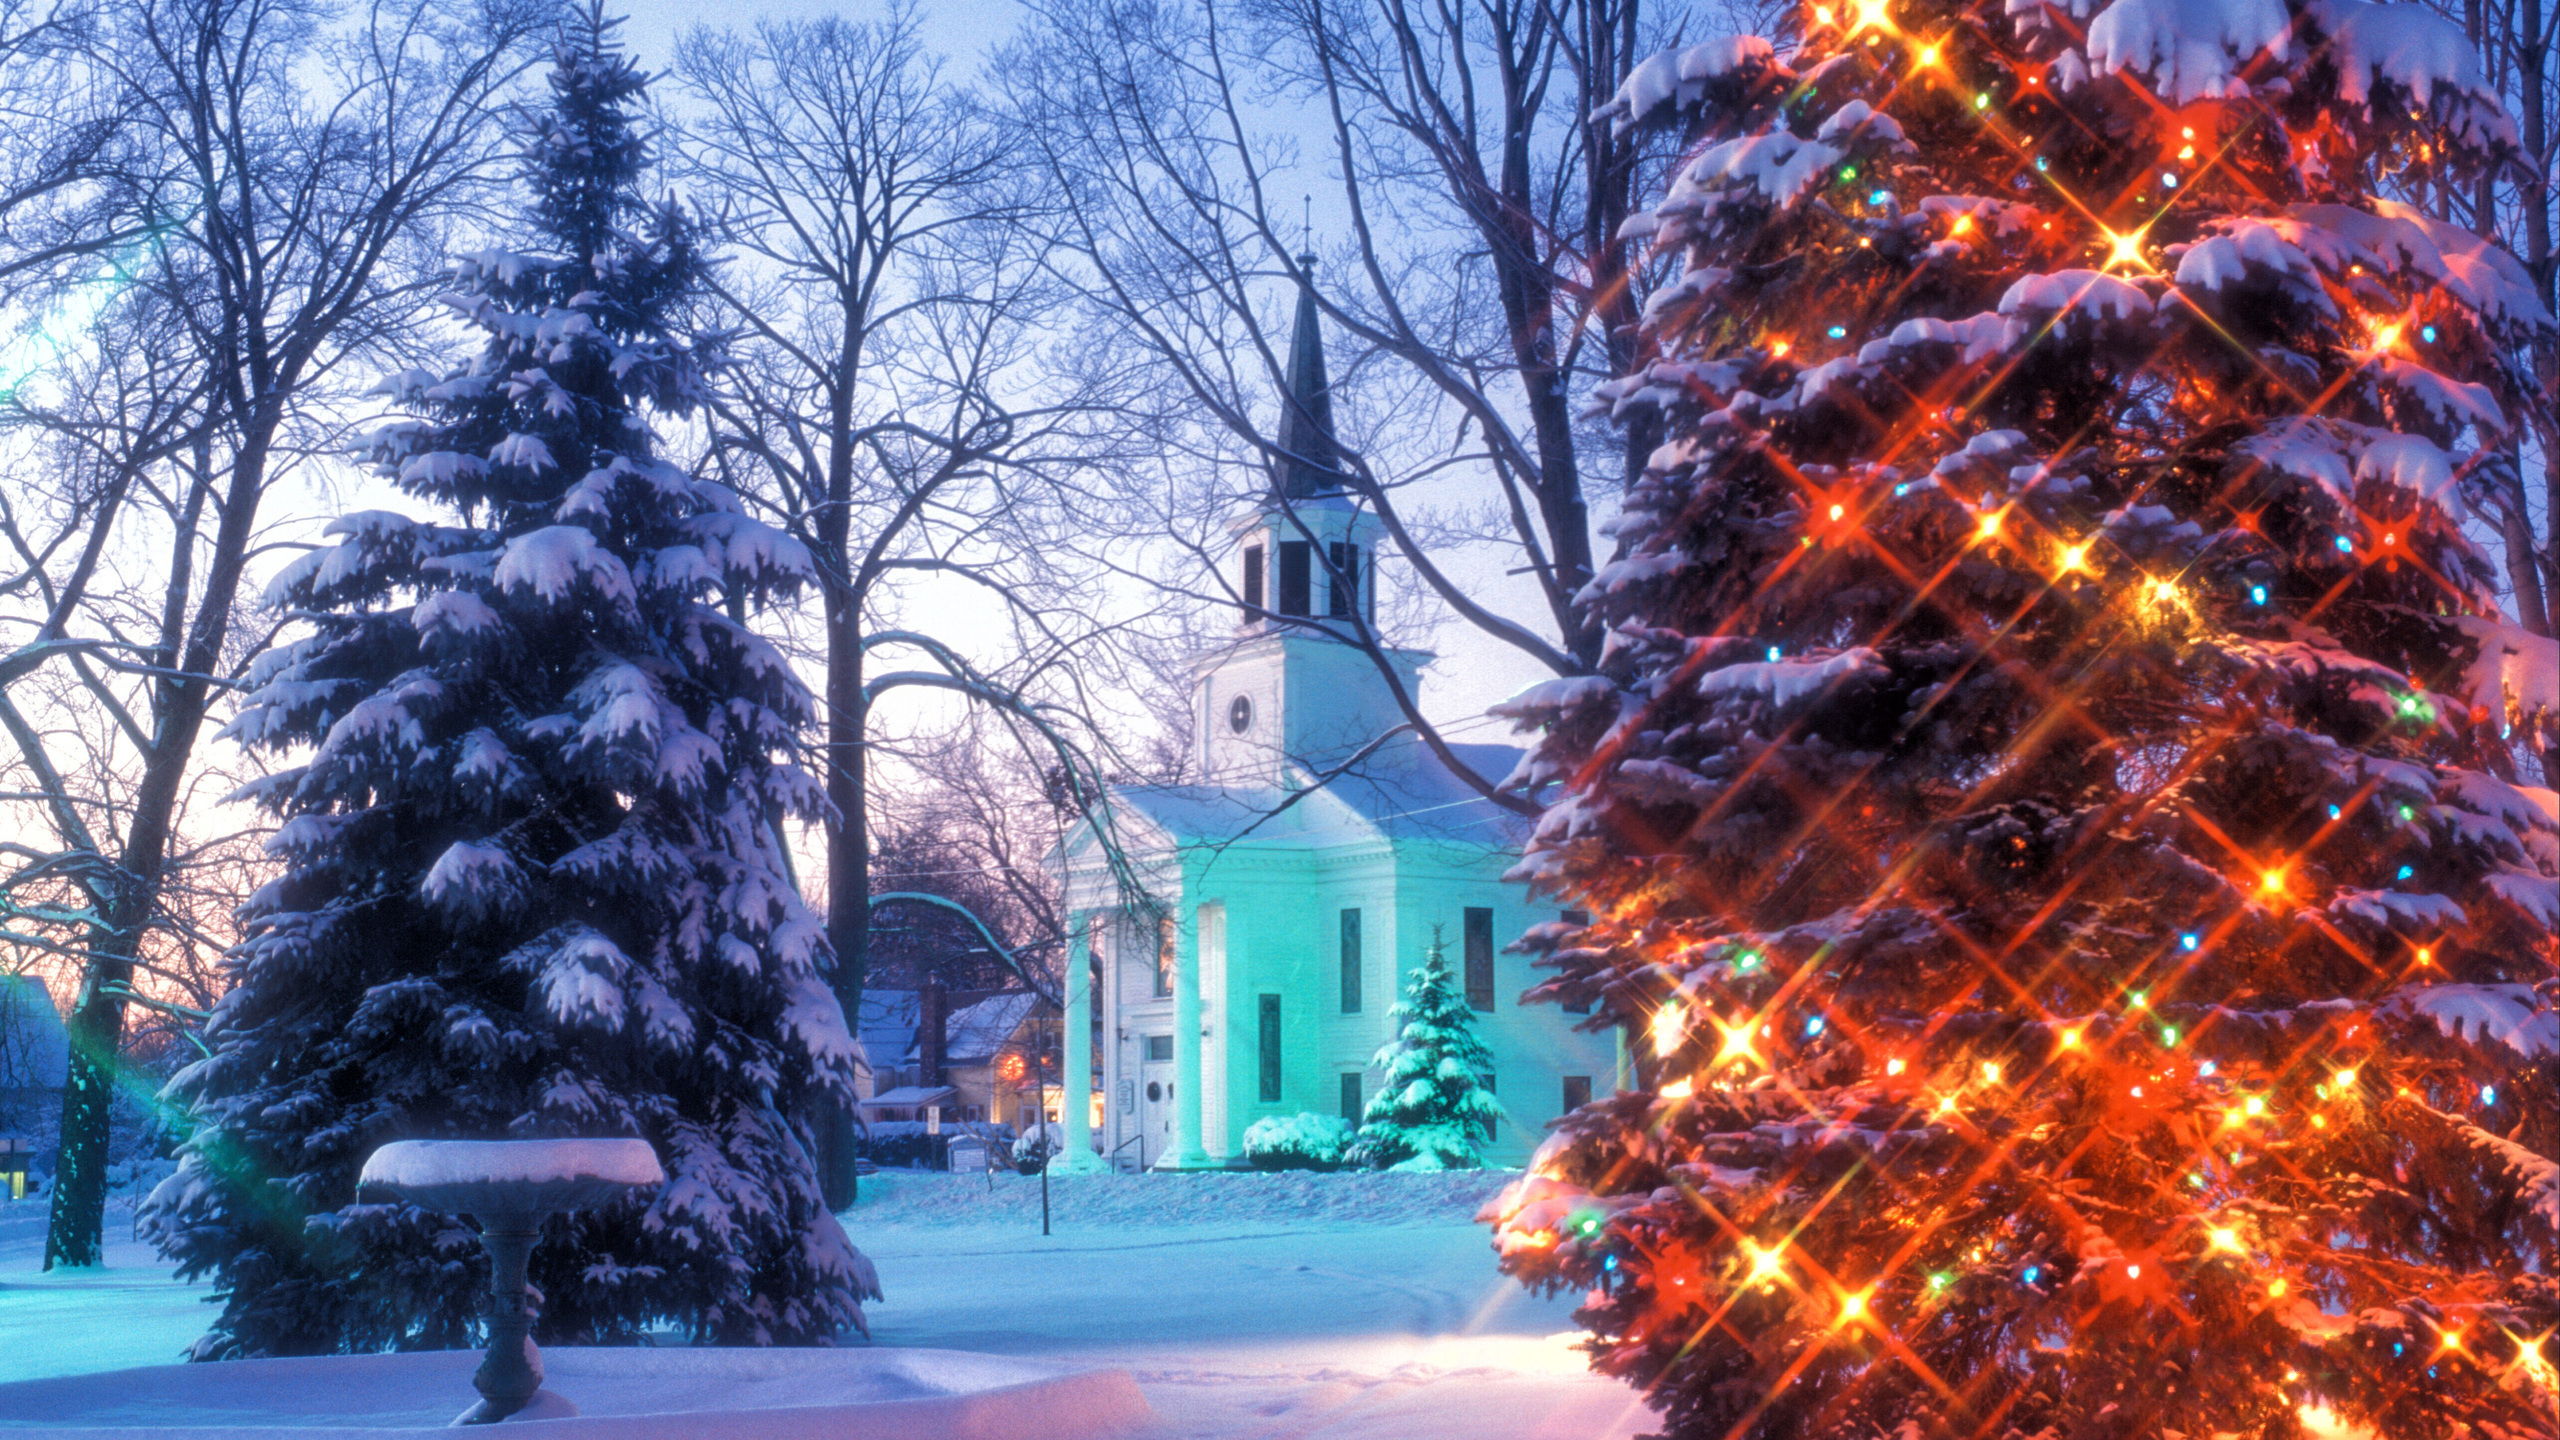 100 Holiday Desktop Backgrounds Hd Wallpapers: Christmas In Vermont HD Wallpaper